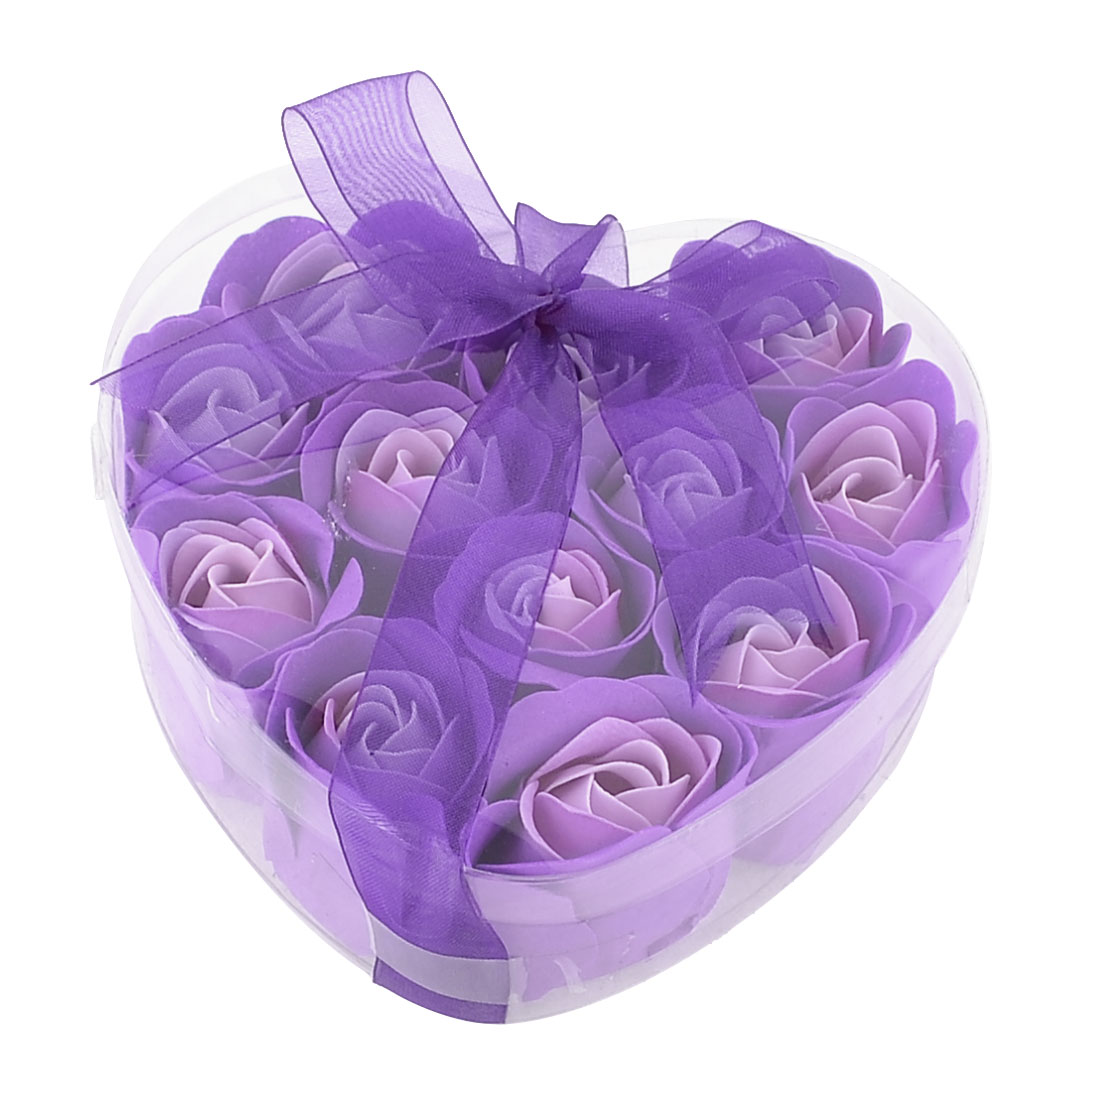 12 x Scented Rose Shaped Bathing Bath Soap Petals Flakes Purple